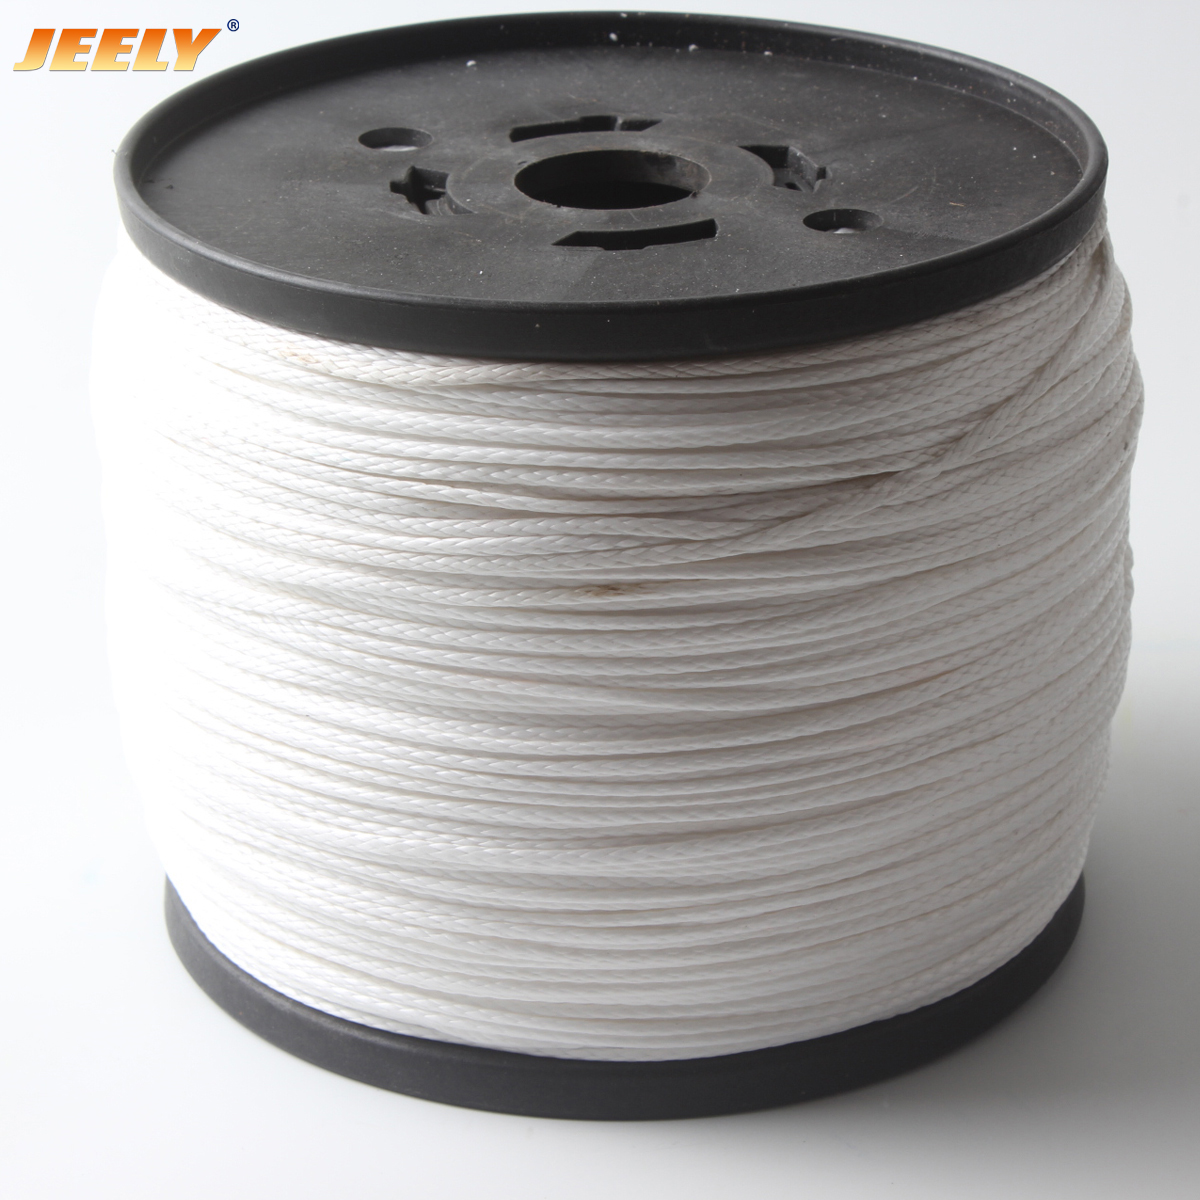 1.3mm 6strands Spectra Fishing Line